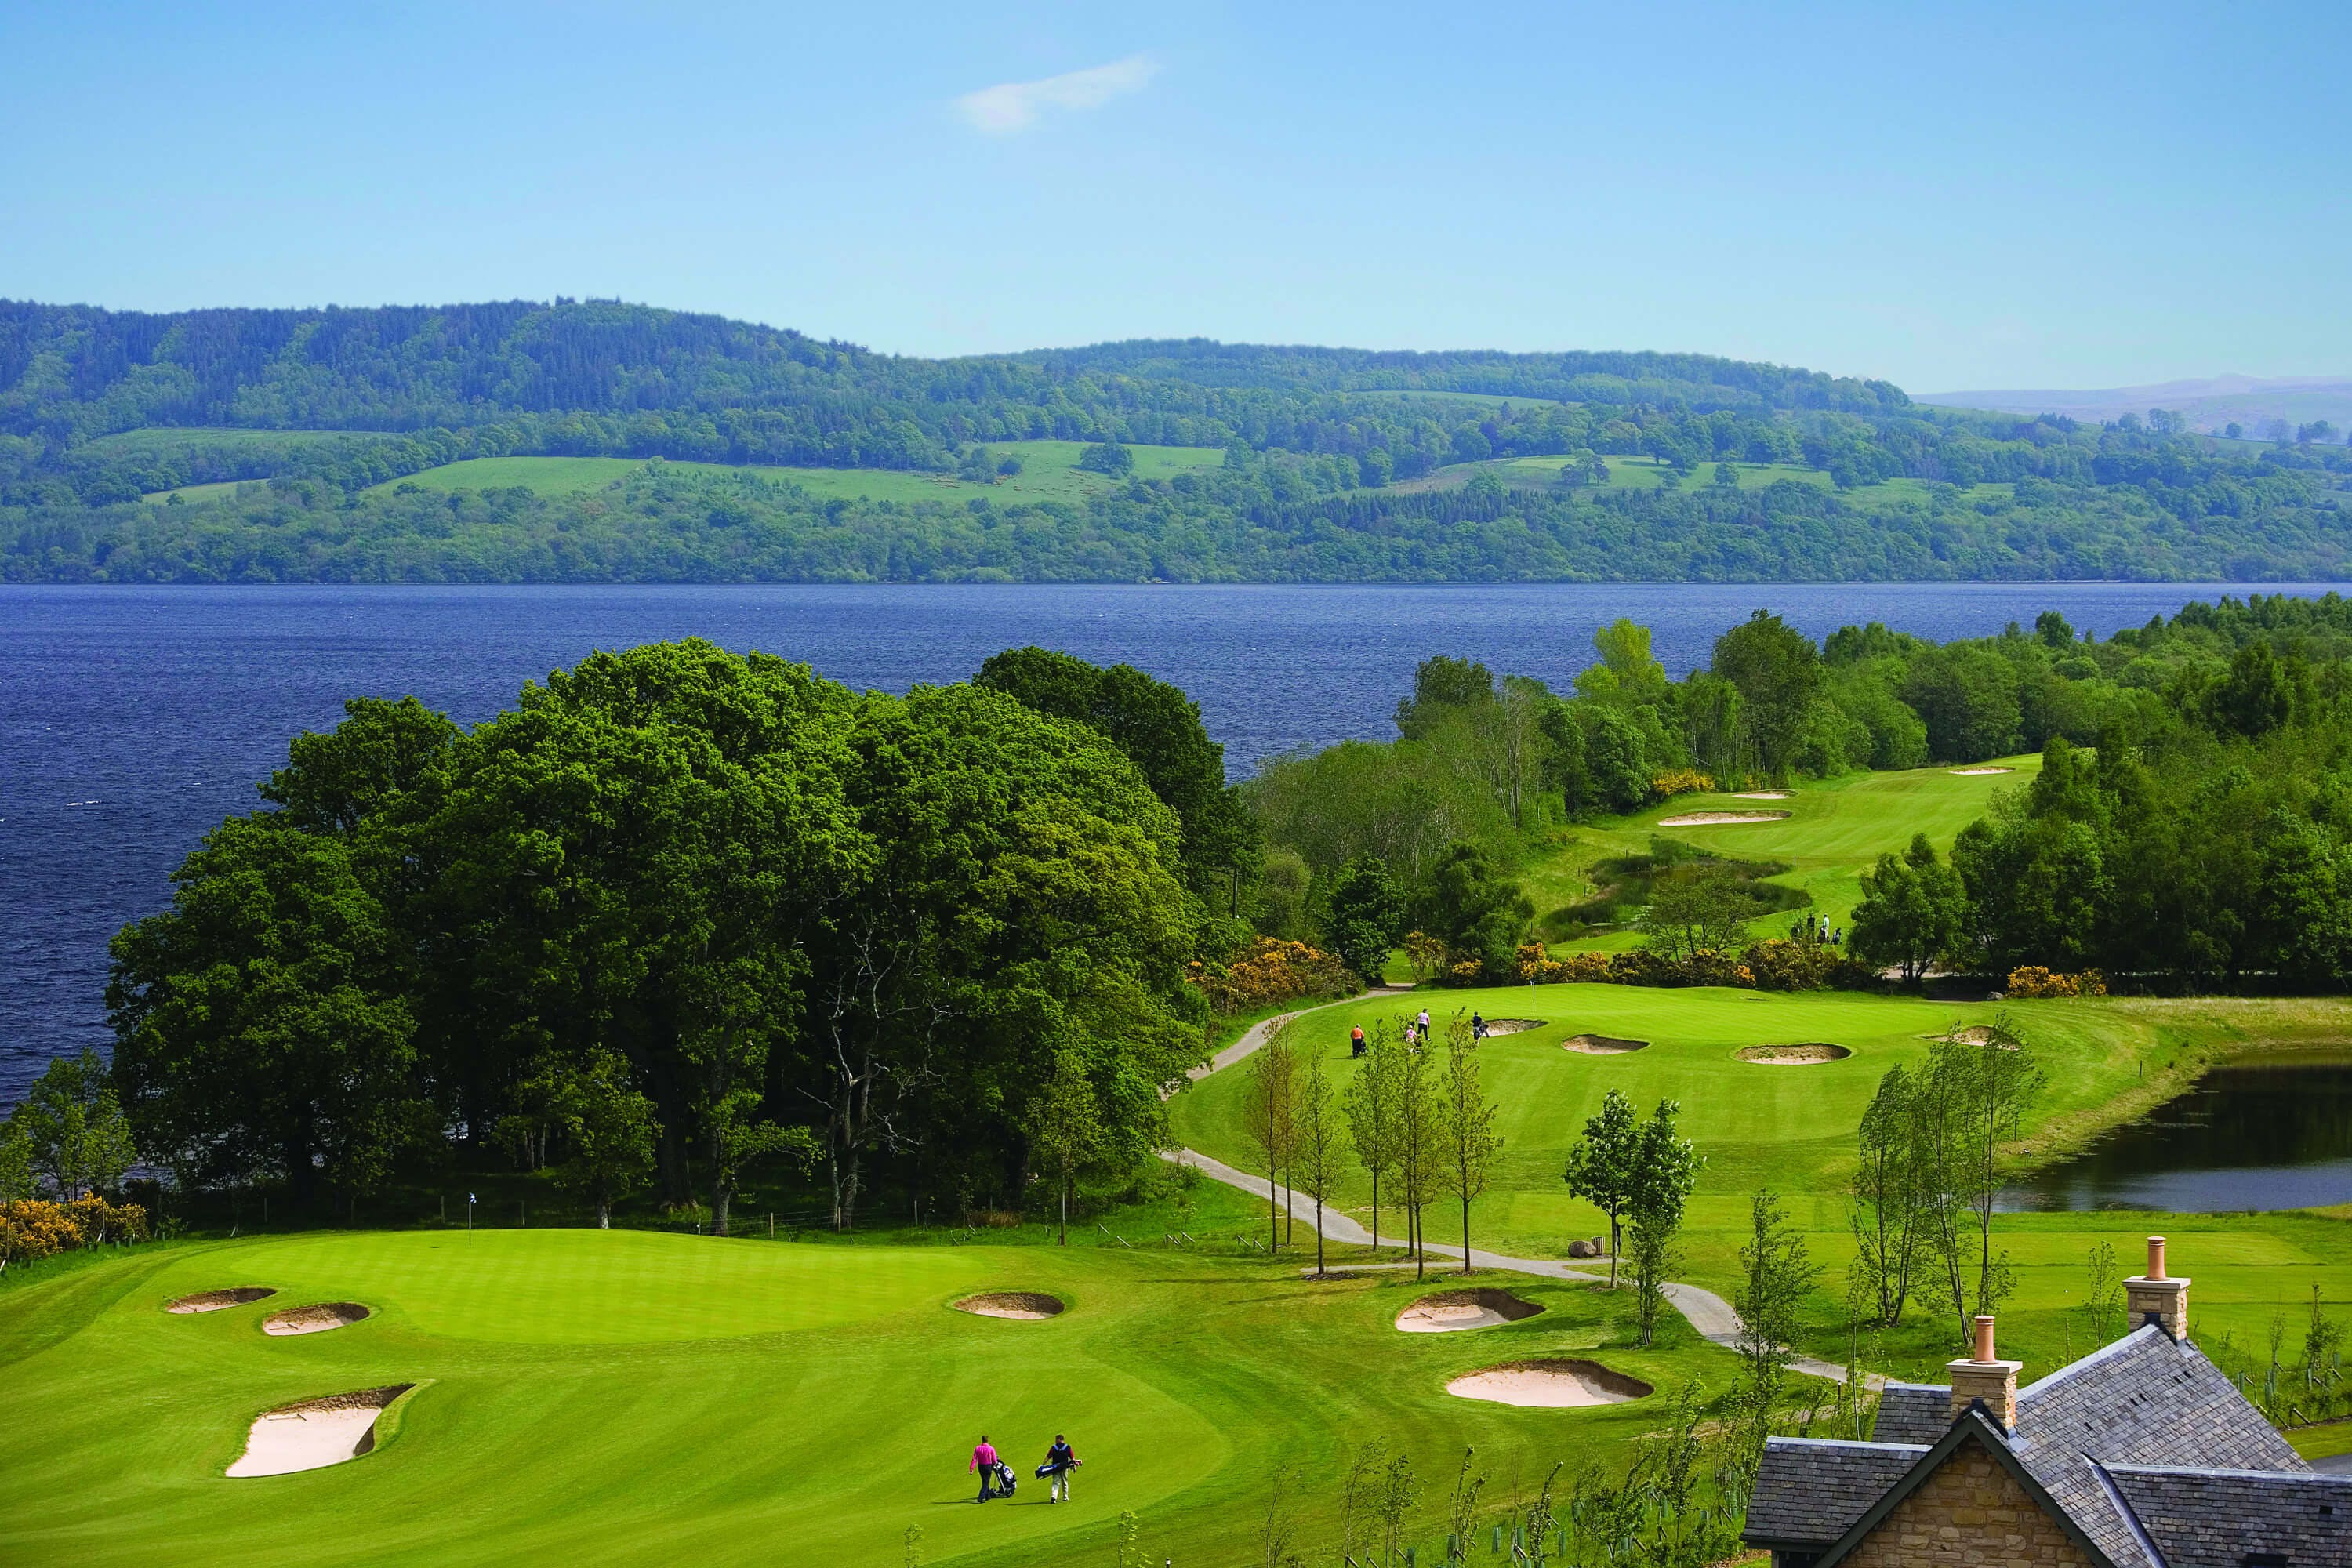 The Carrick Golf Course View & Loch Lomond